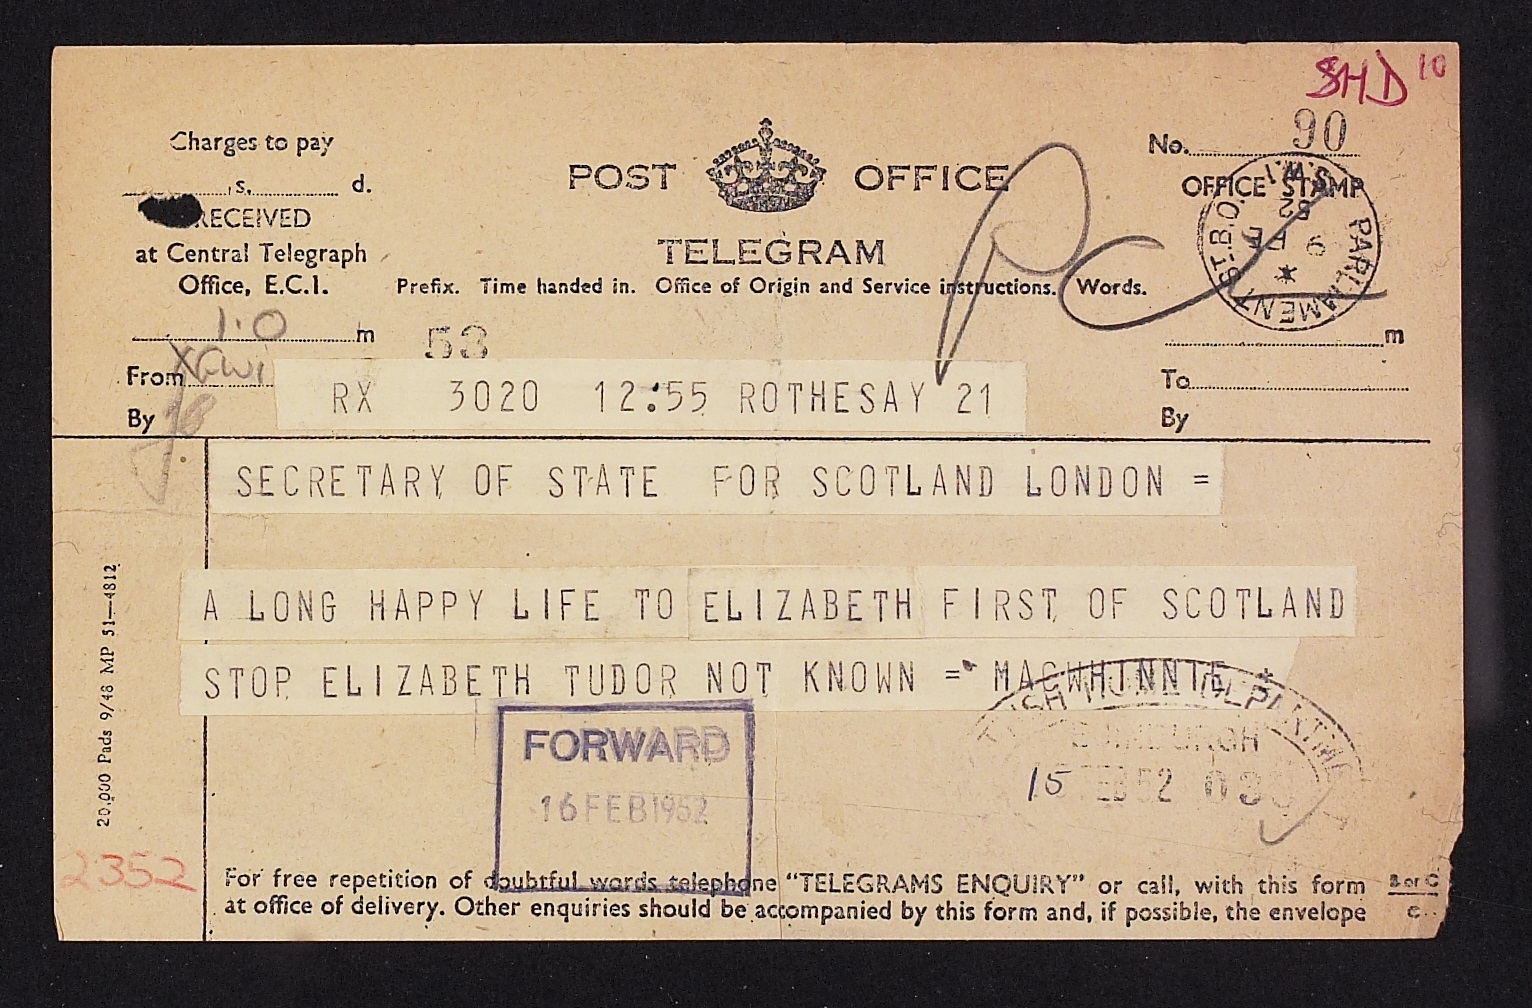 Photo of a telegram sent to the Secretary of State for Scotland pointed out that the Queen was the first Queen Elizabeth to reign in Scotland, 1952